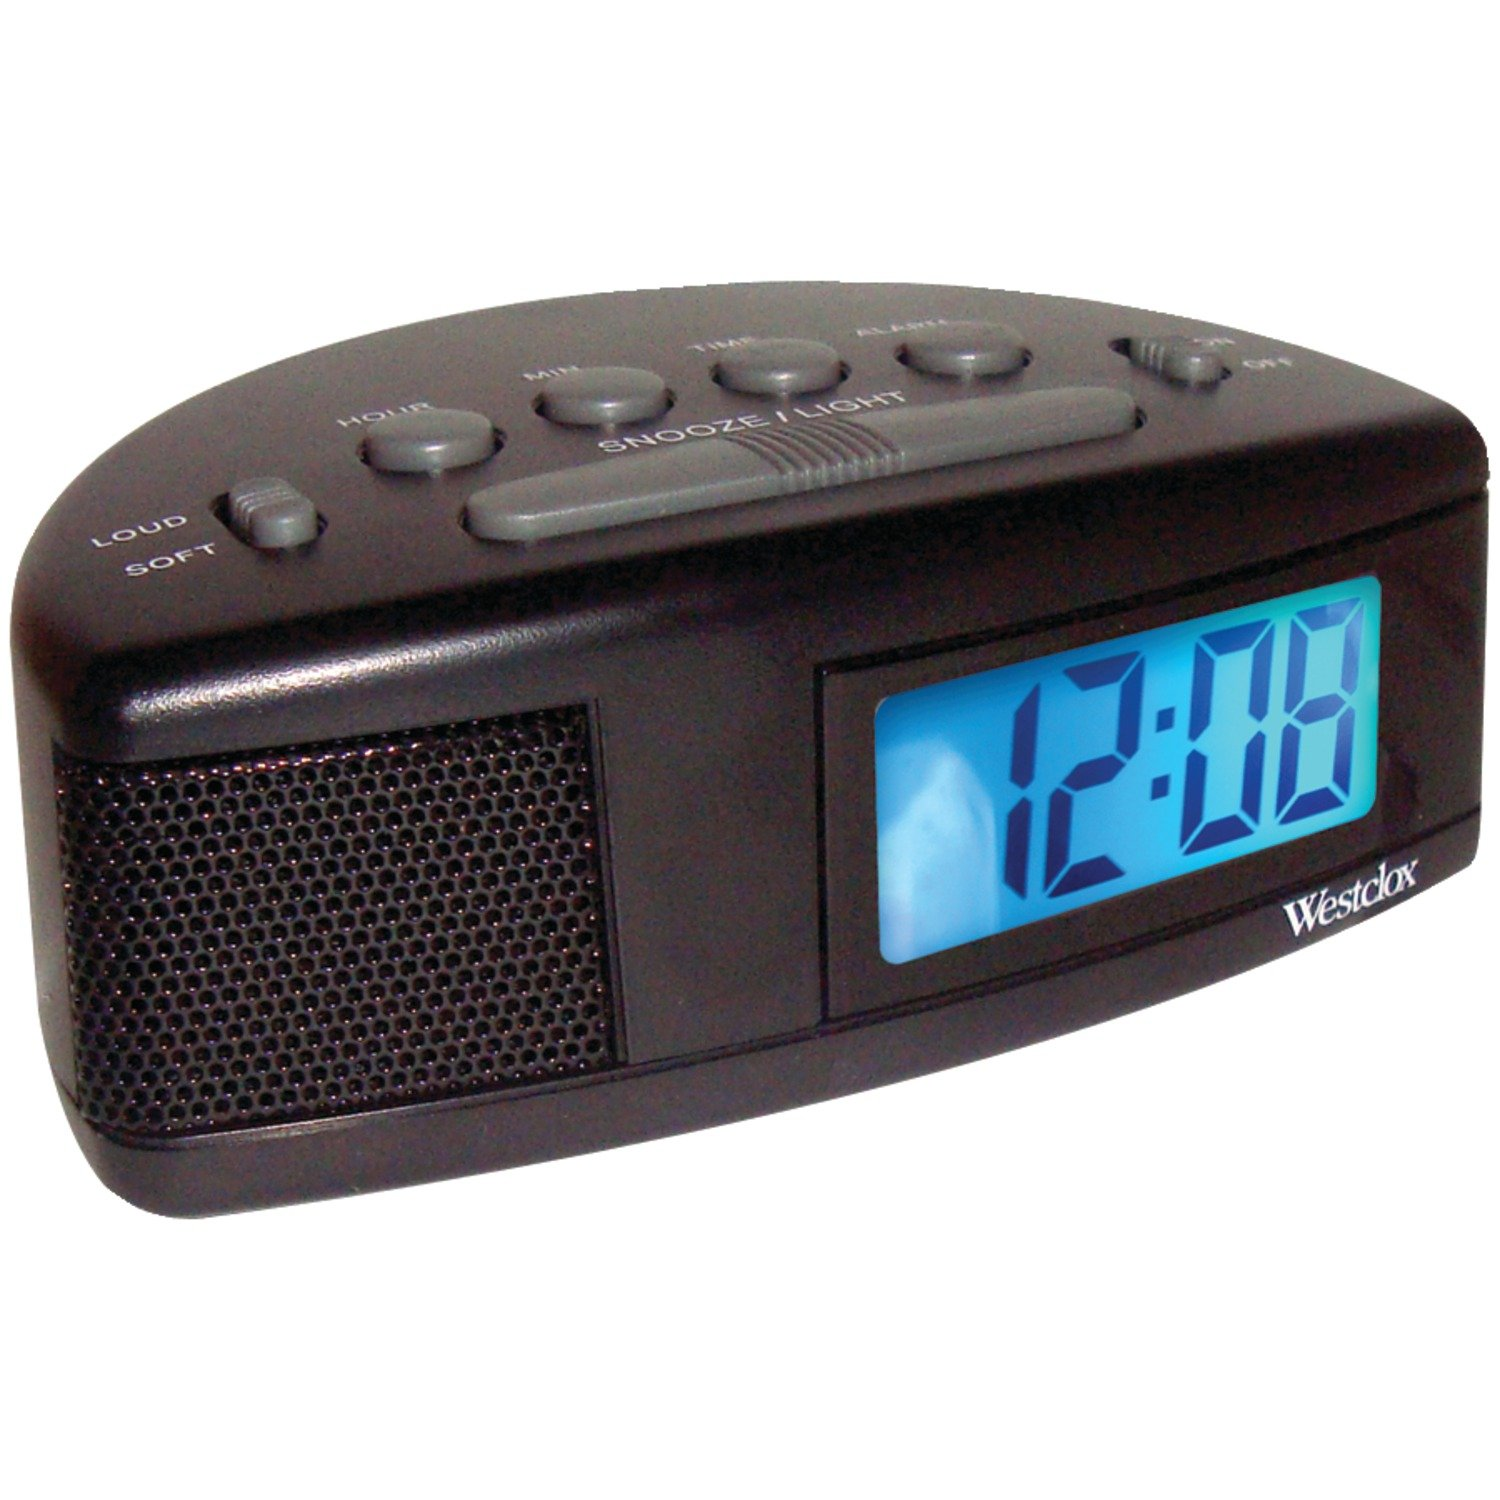 WESTCLOX NYL47547, Super Loud LCD Alarm Clock with Blue Backlight